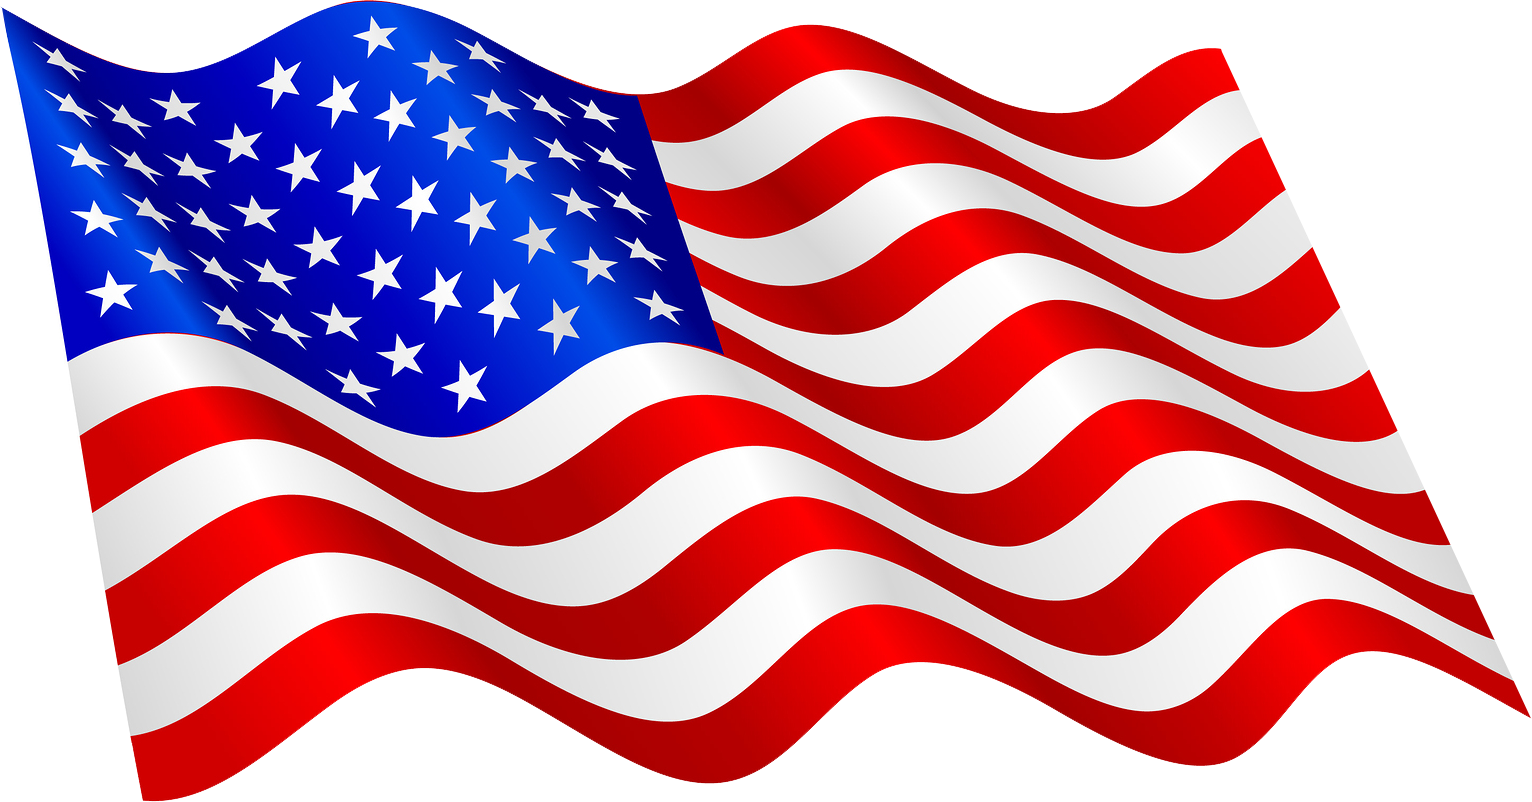 banner library American flag png image. Flags vector transparent